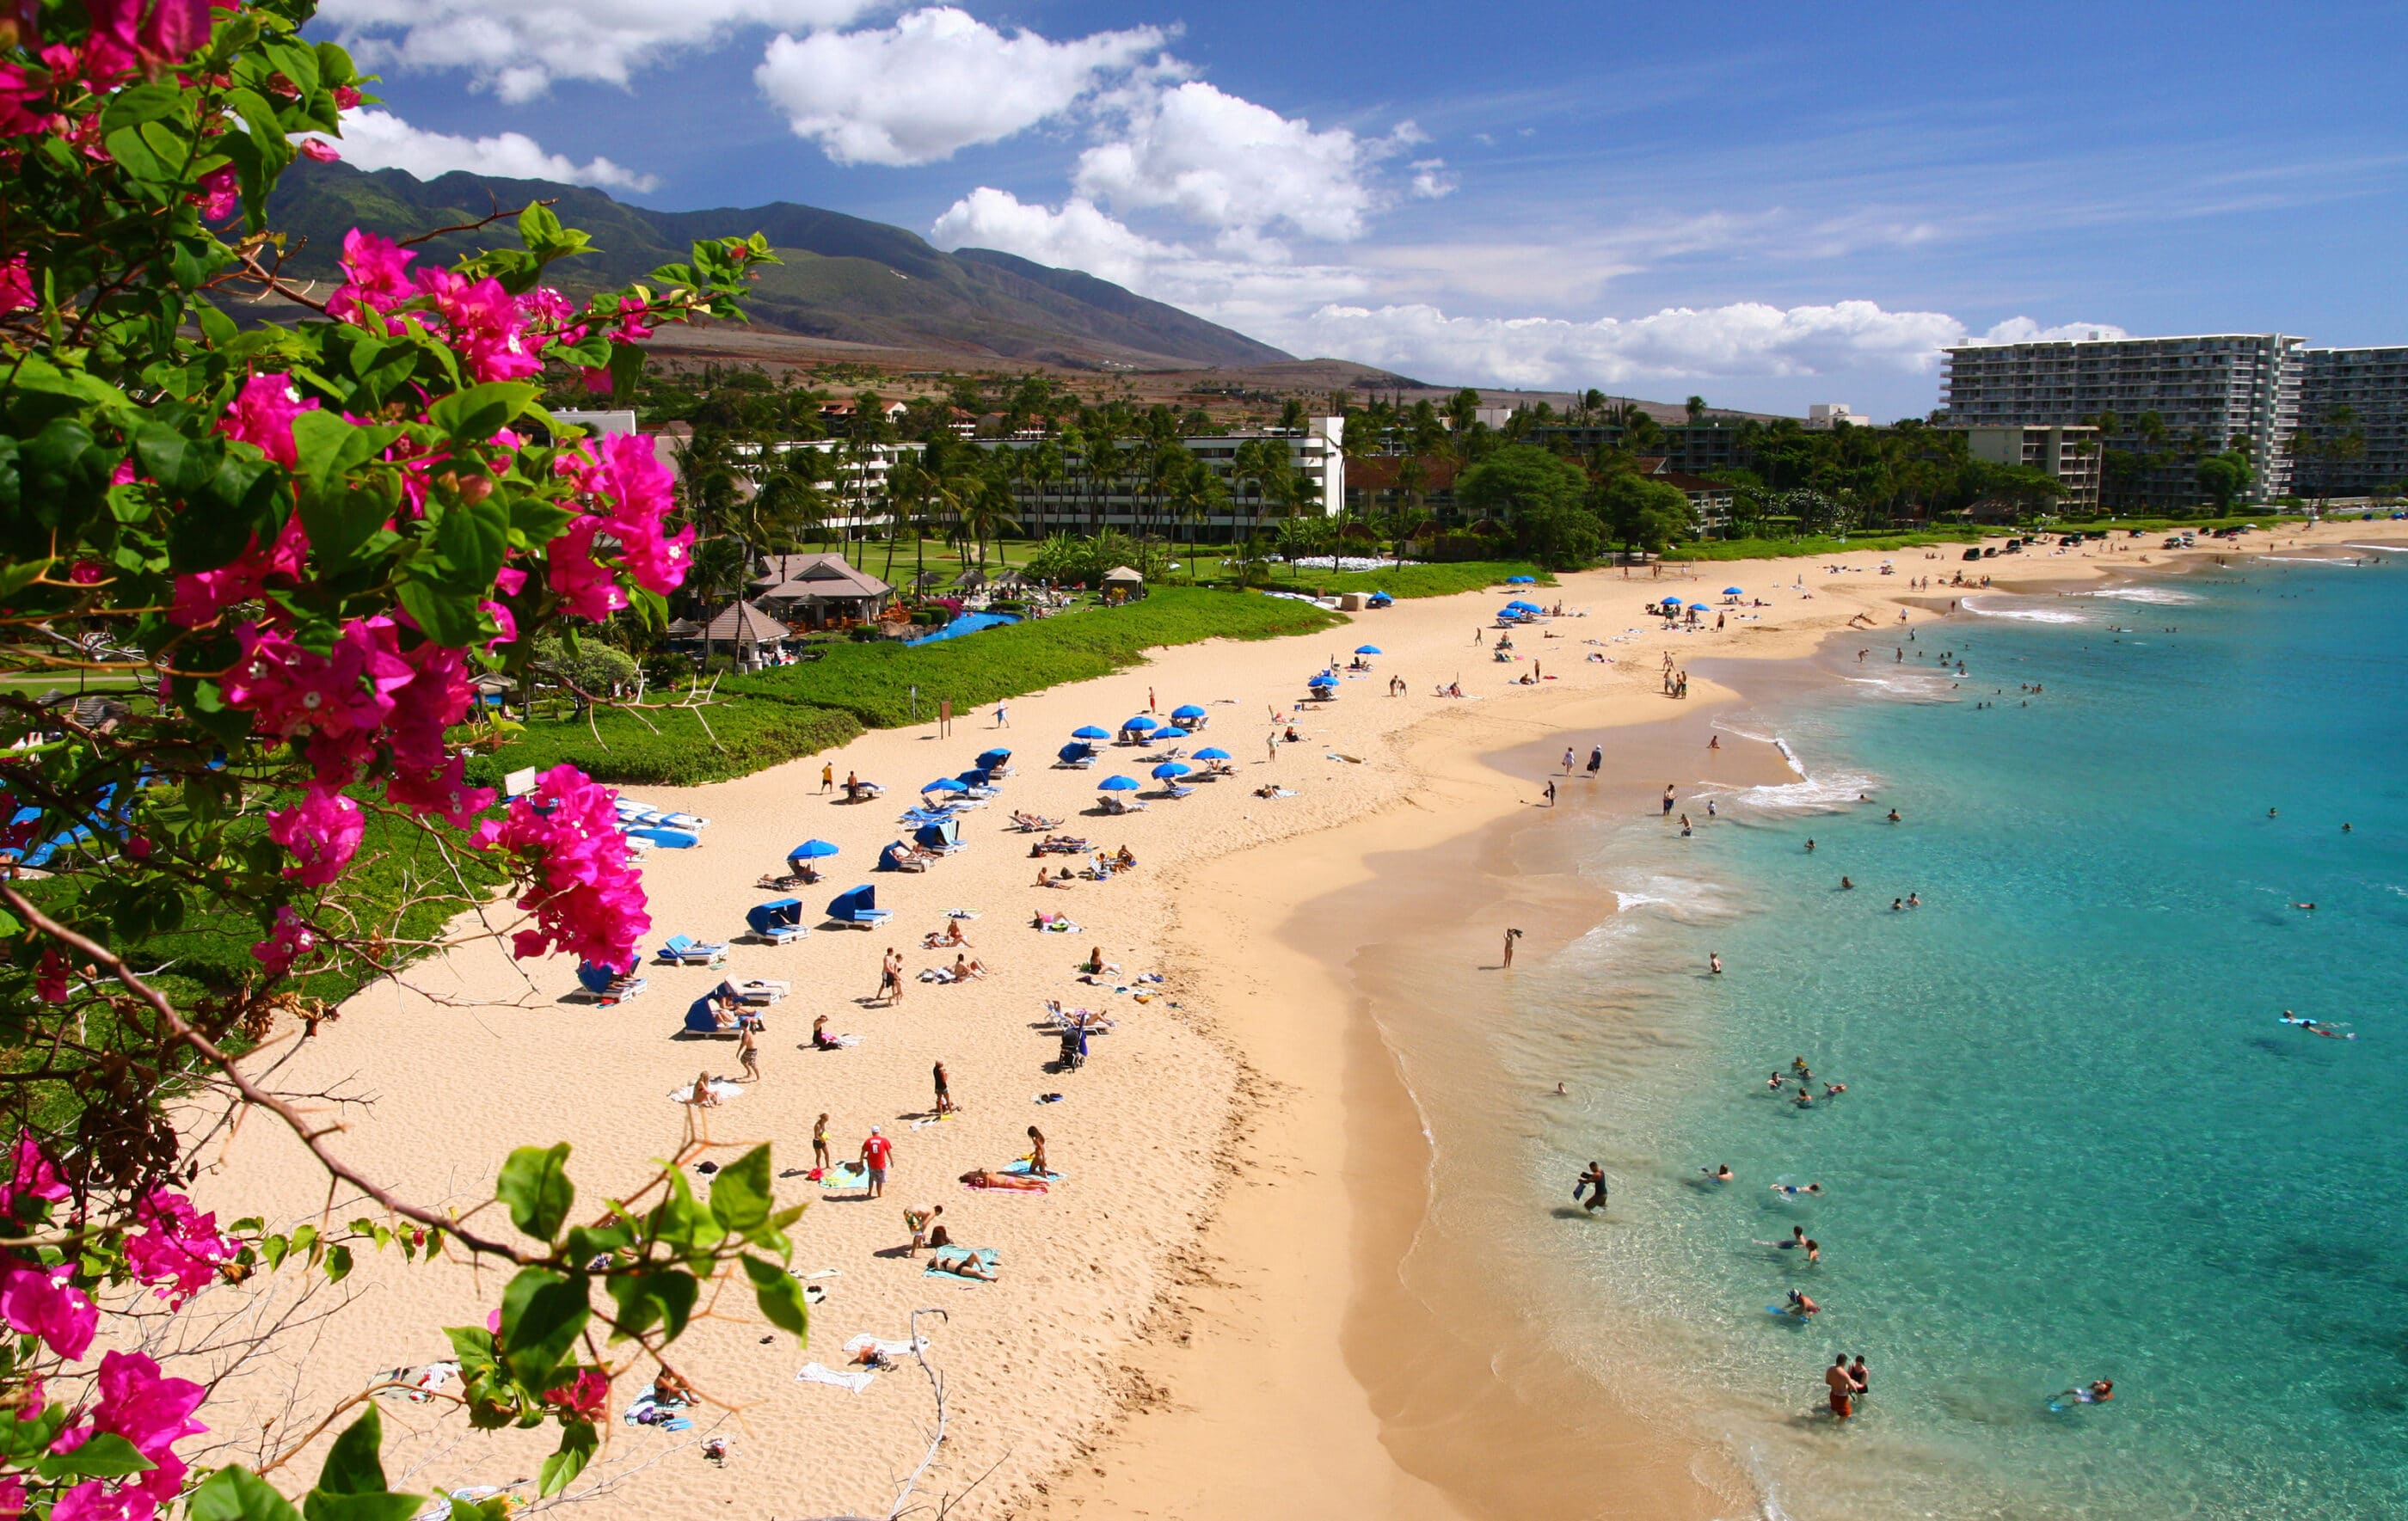 People dotting the Kaanapali beach on a sunny day